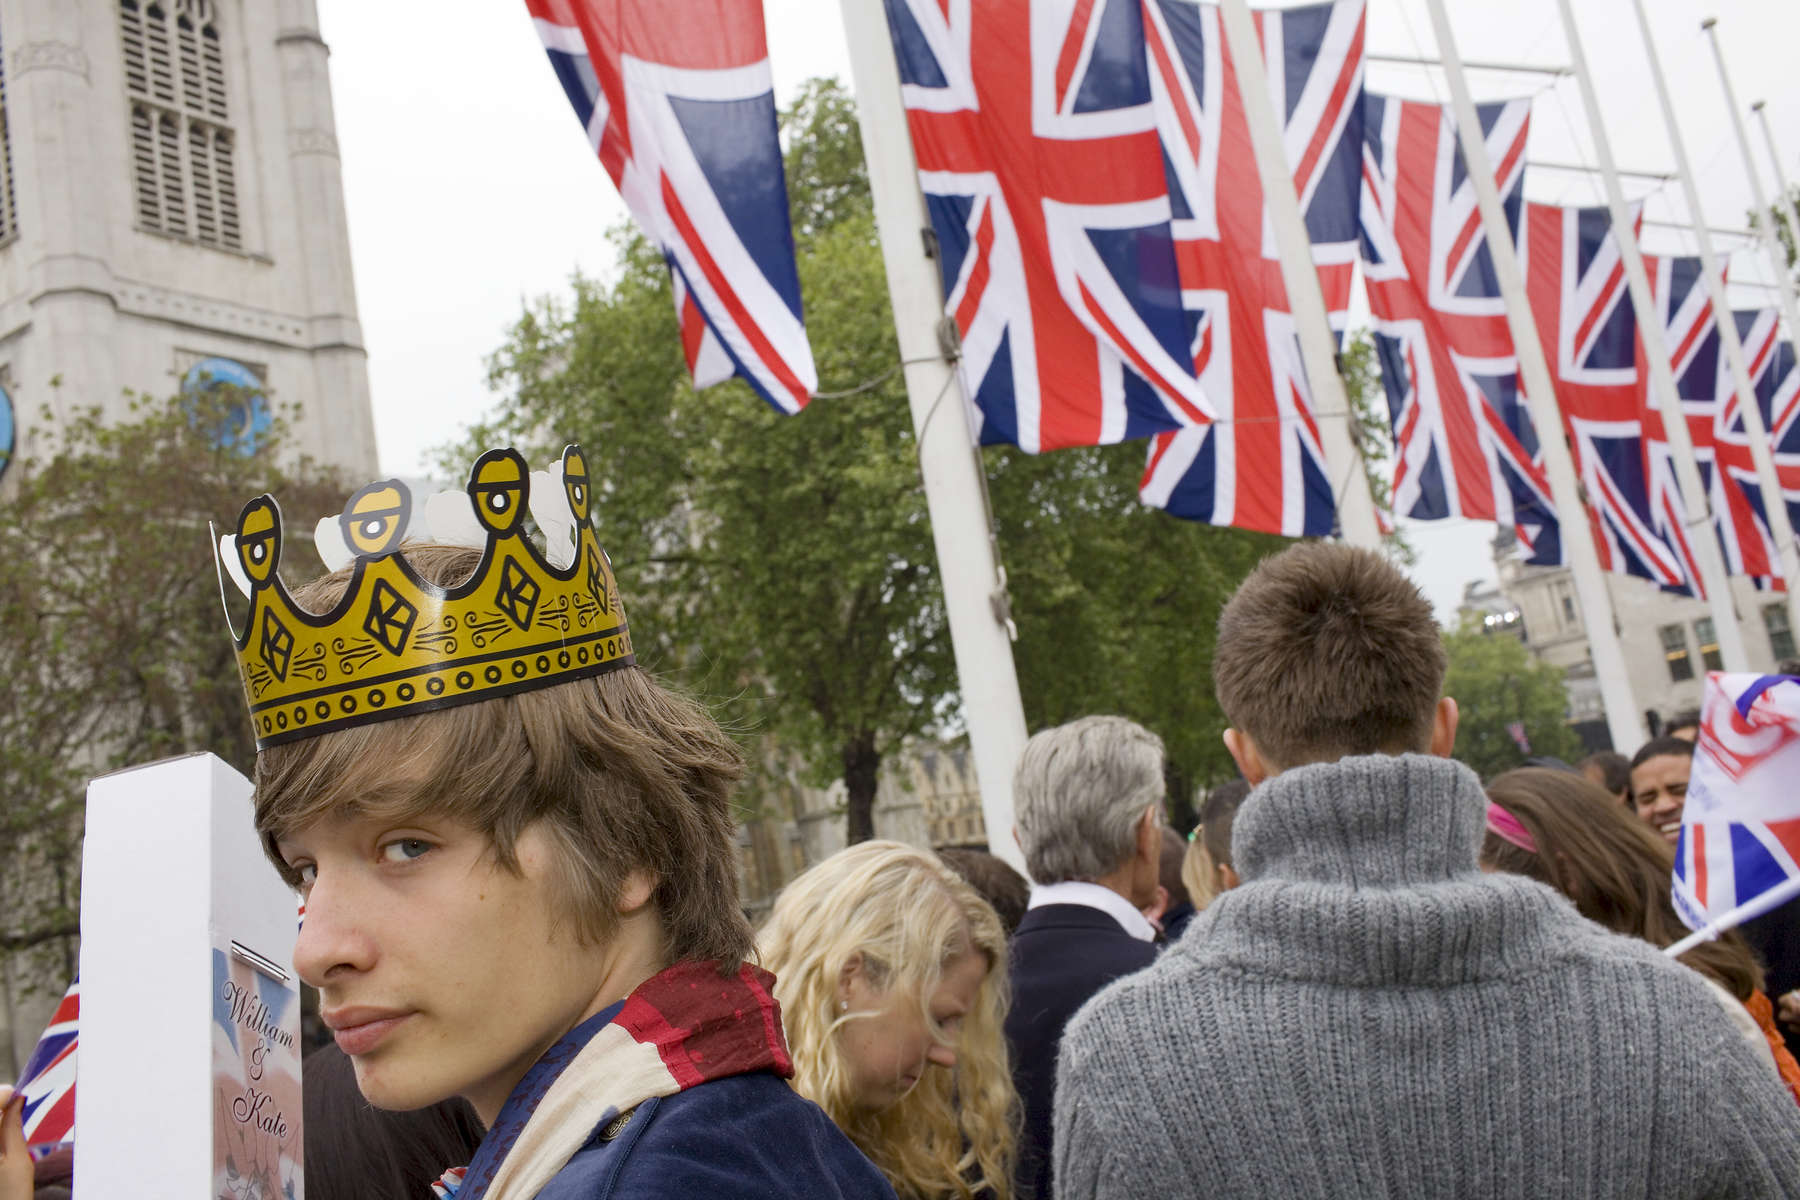 A member of the Higgins family wearing a crown watches the Royal Wedding from Parliament Square in Central London, UK.